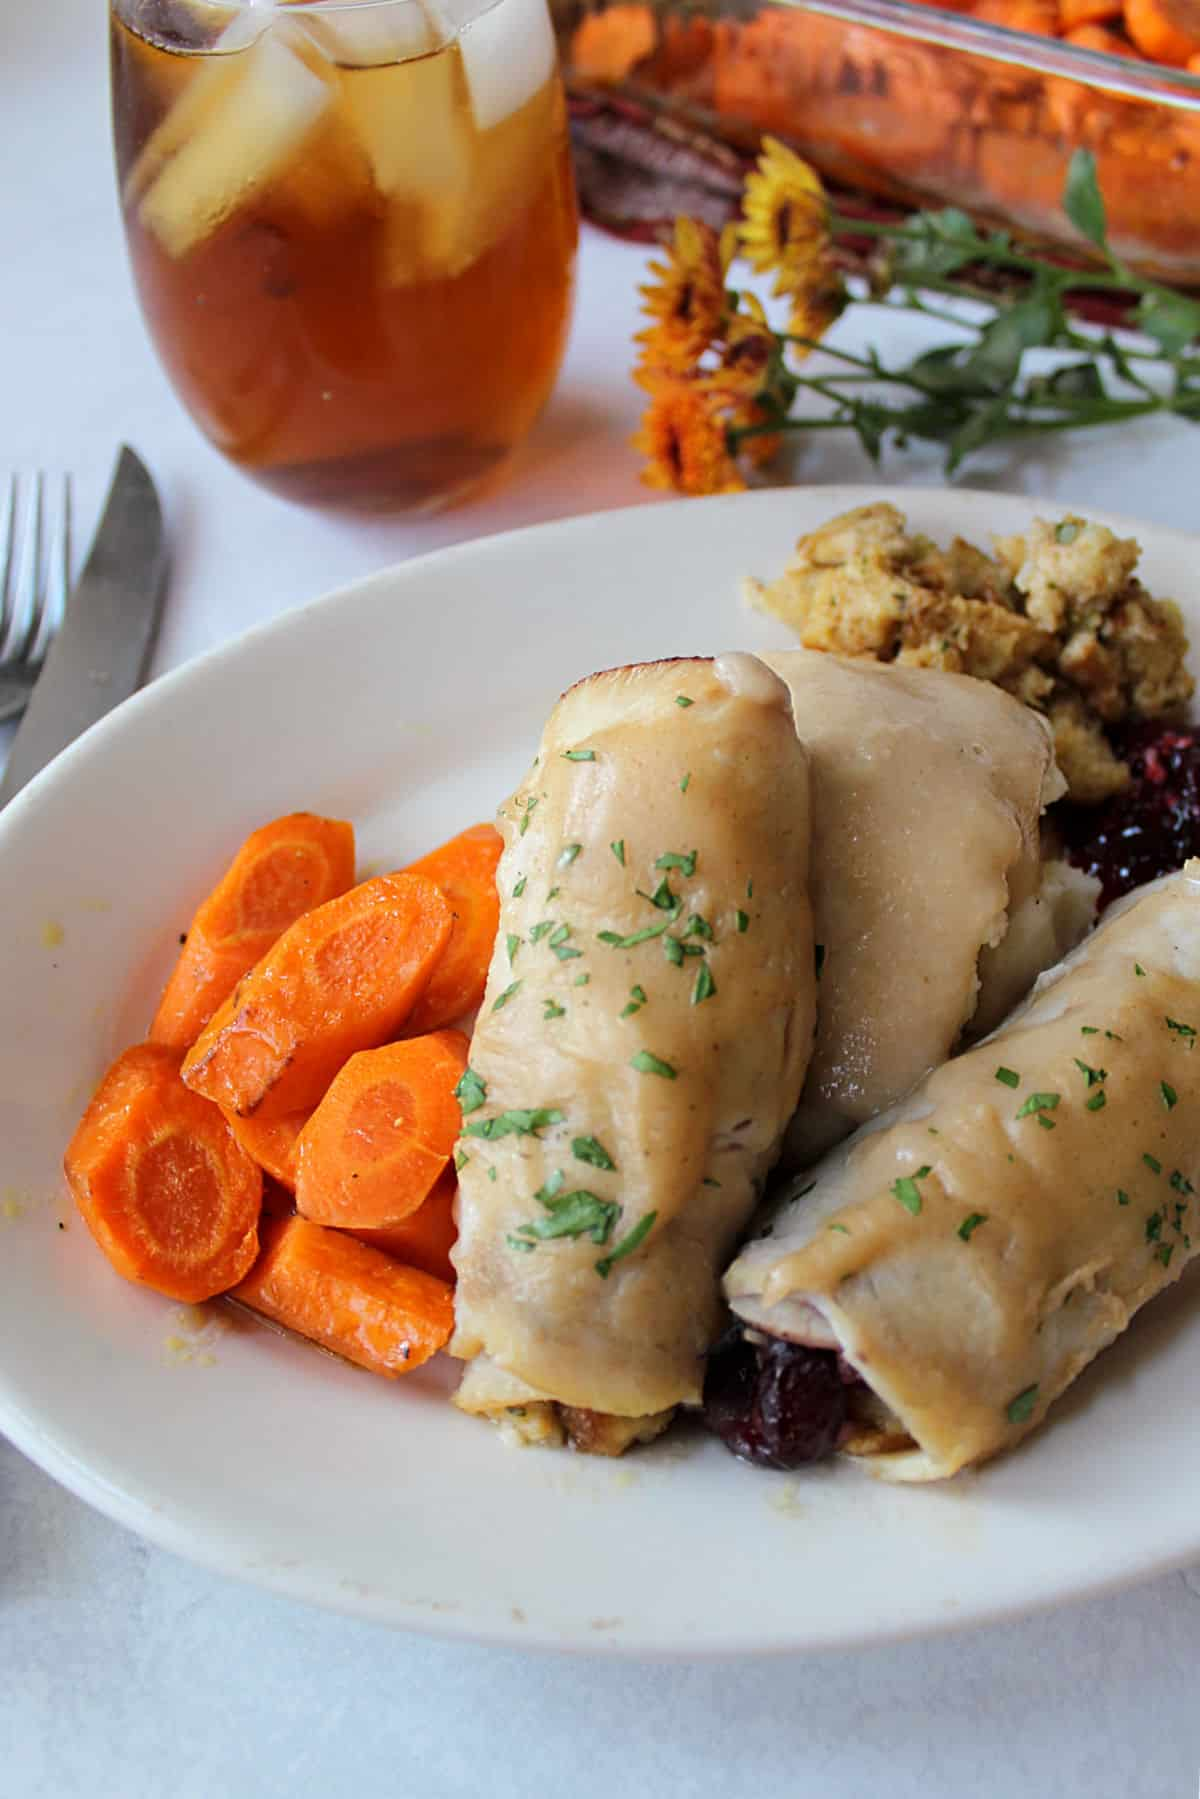 stuffed turkey rolls with gravy, potatoes and carrots